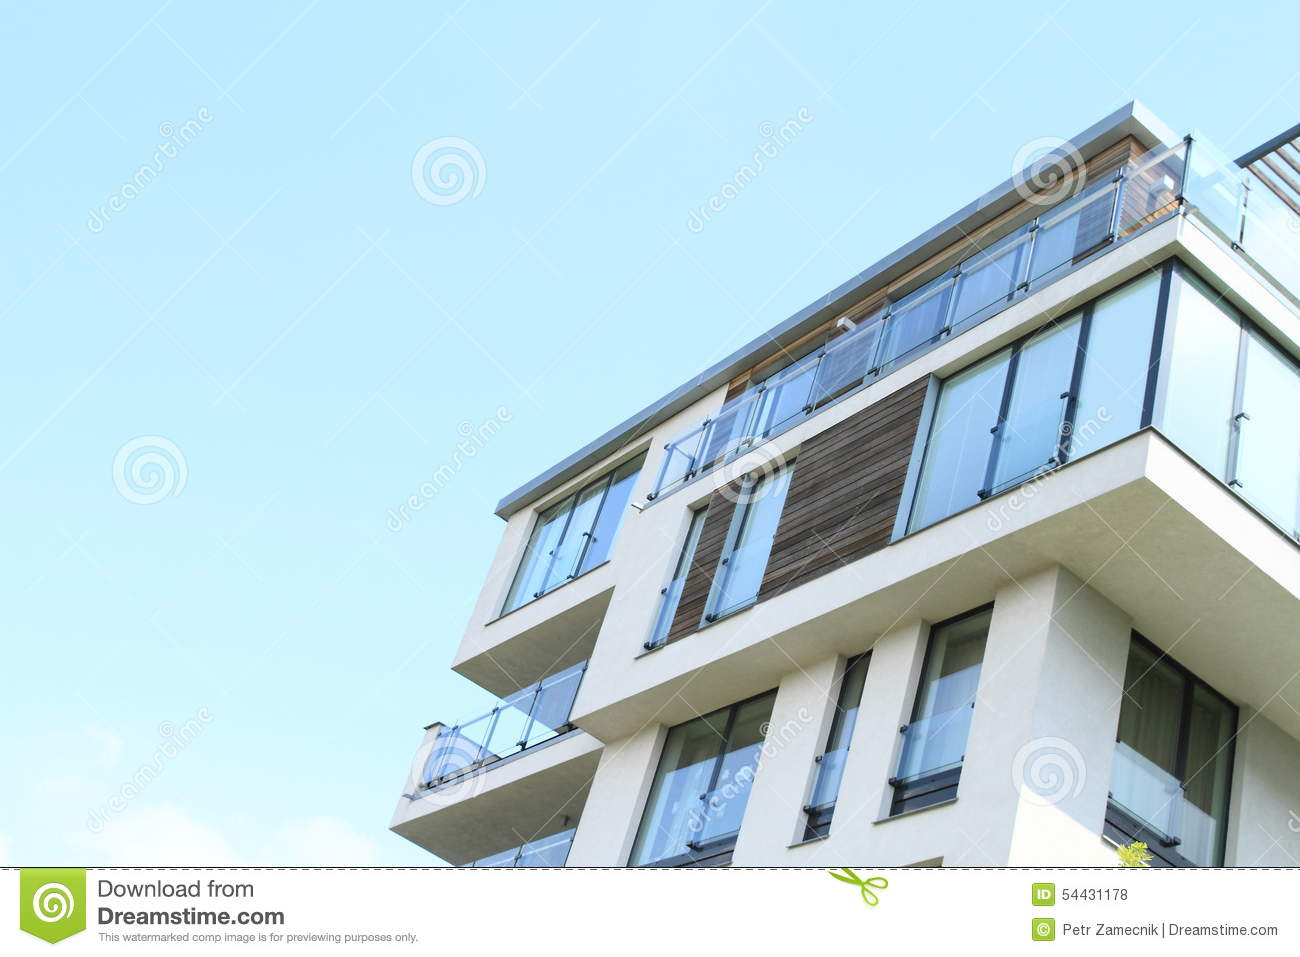 House with flats